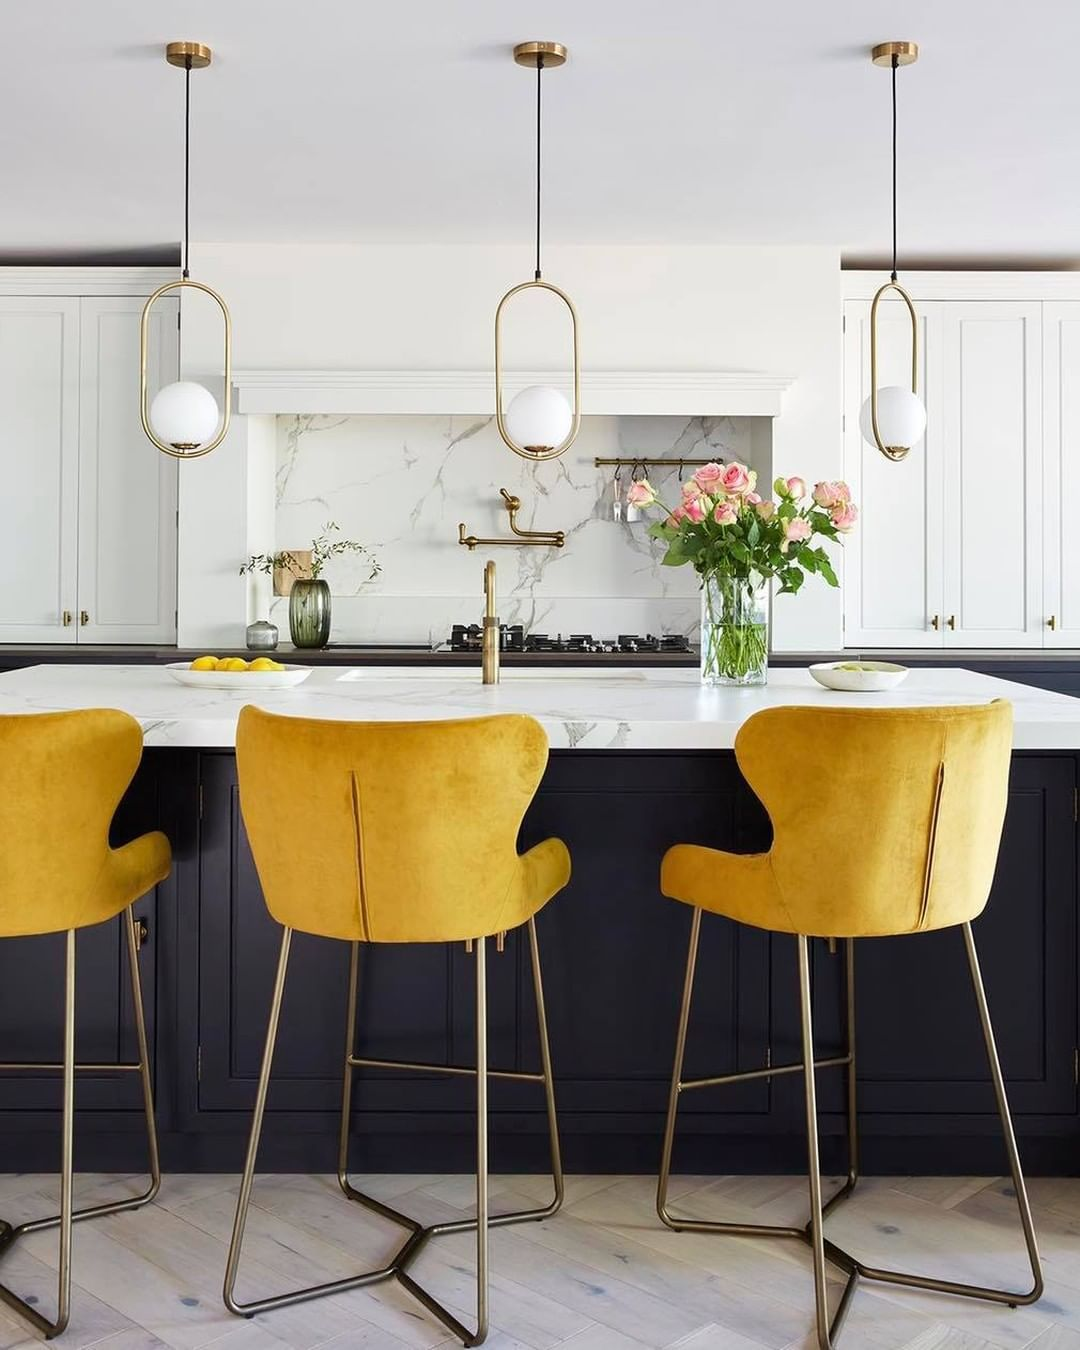 Kitchen with yellow chairs